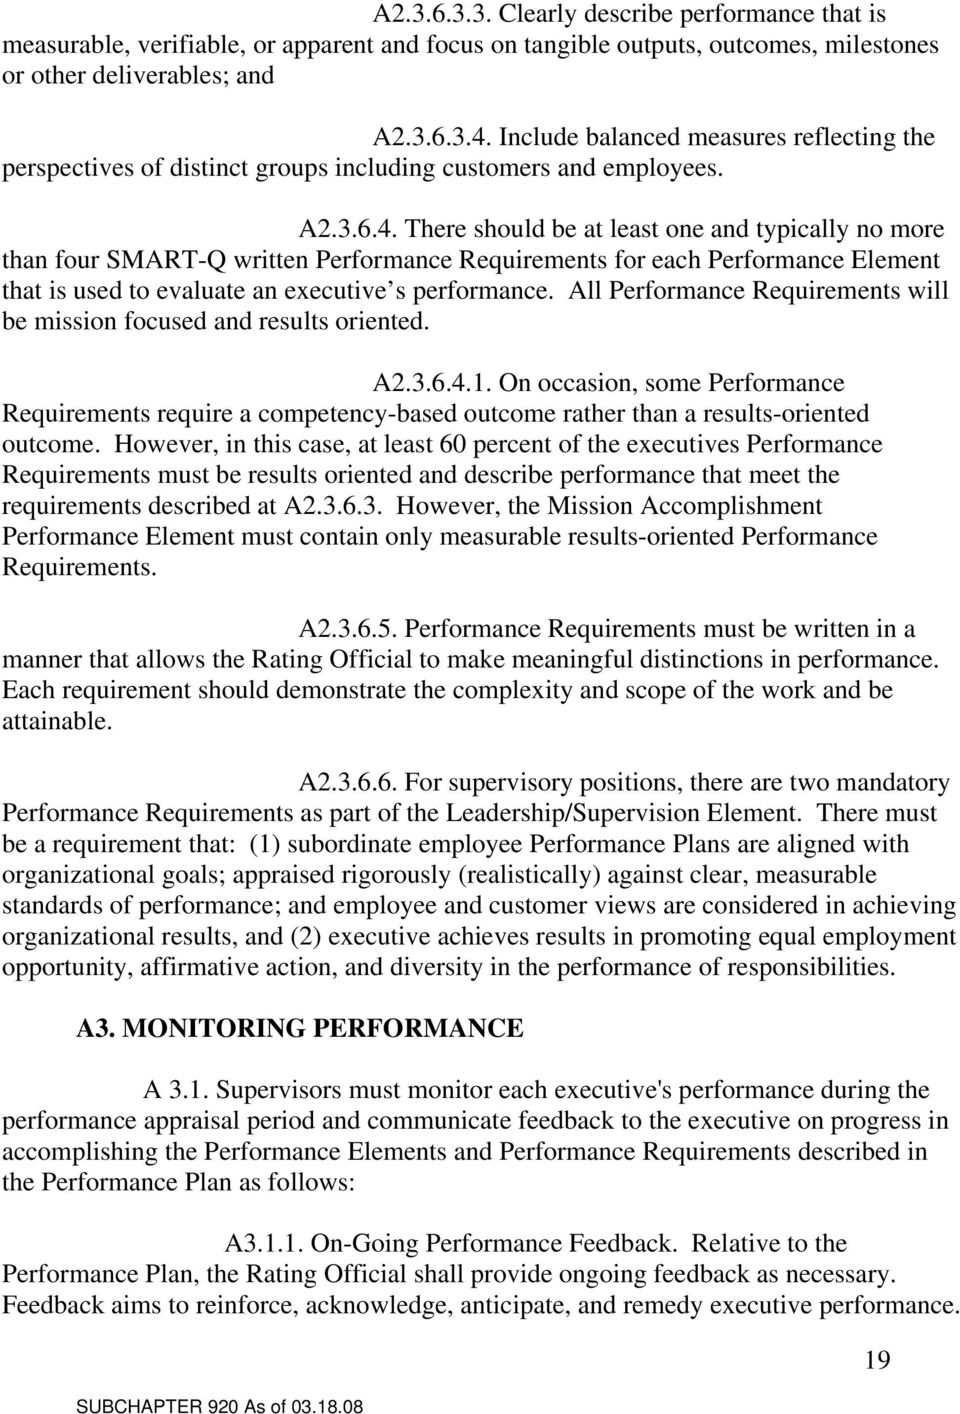 There should be at least one and typically no more than four SMART-Q written Performance Requirements for each Performance Element that is used to evaluate an executive s performance.